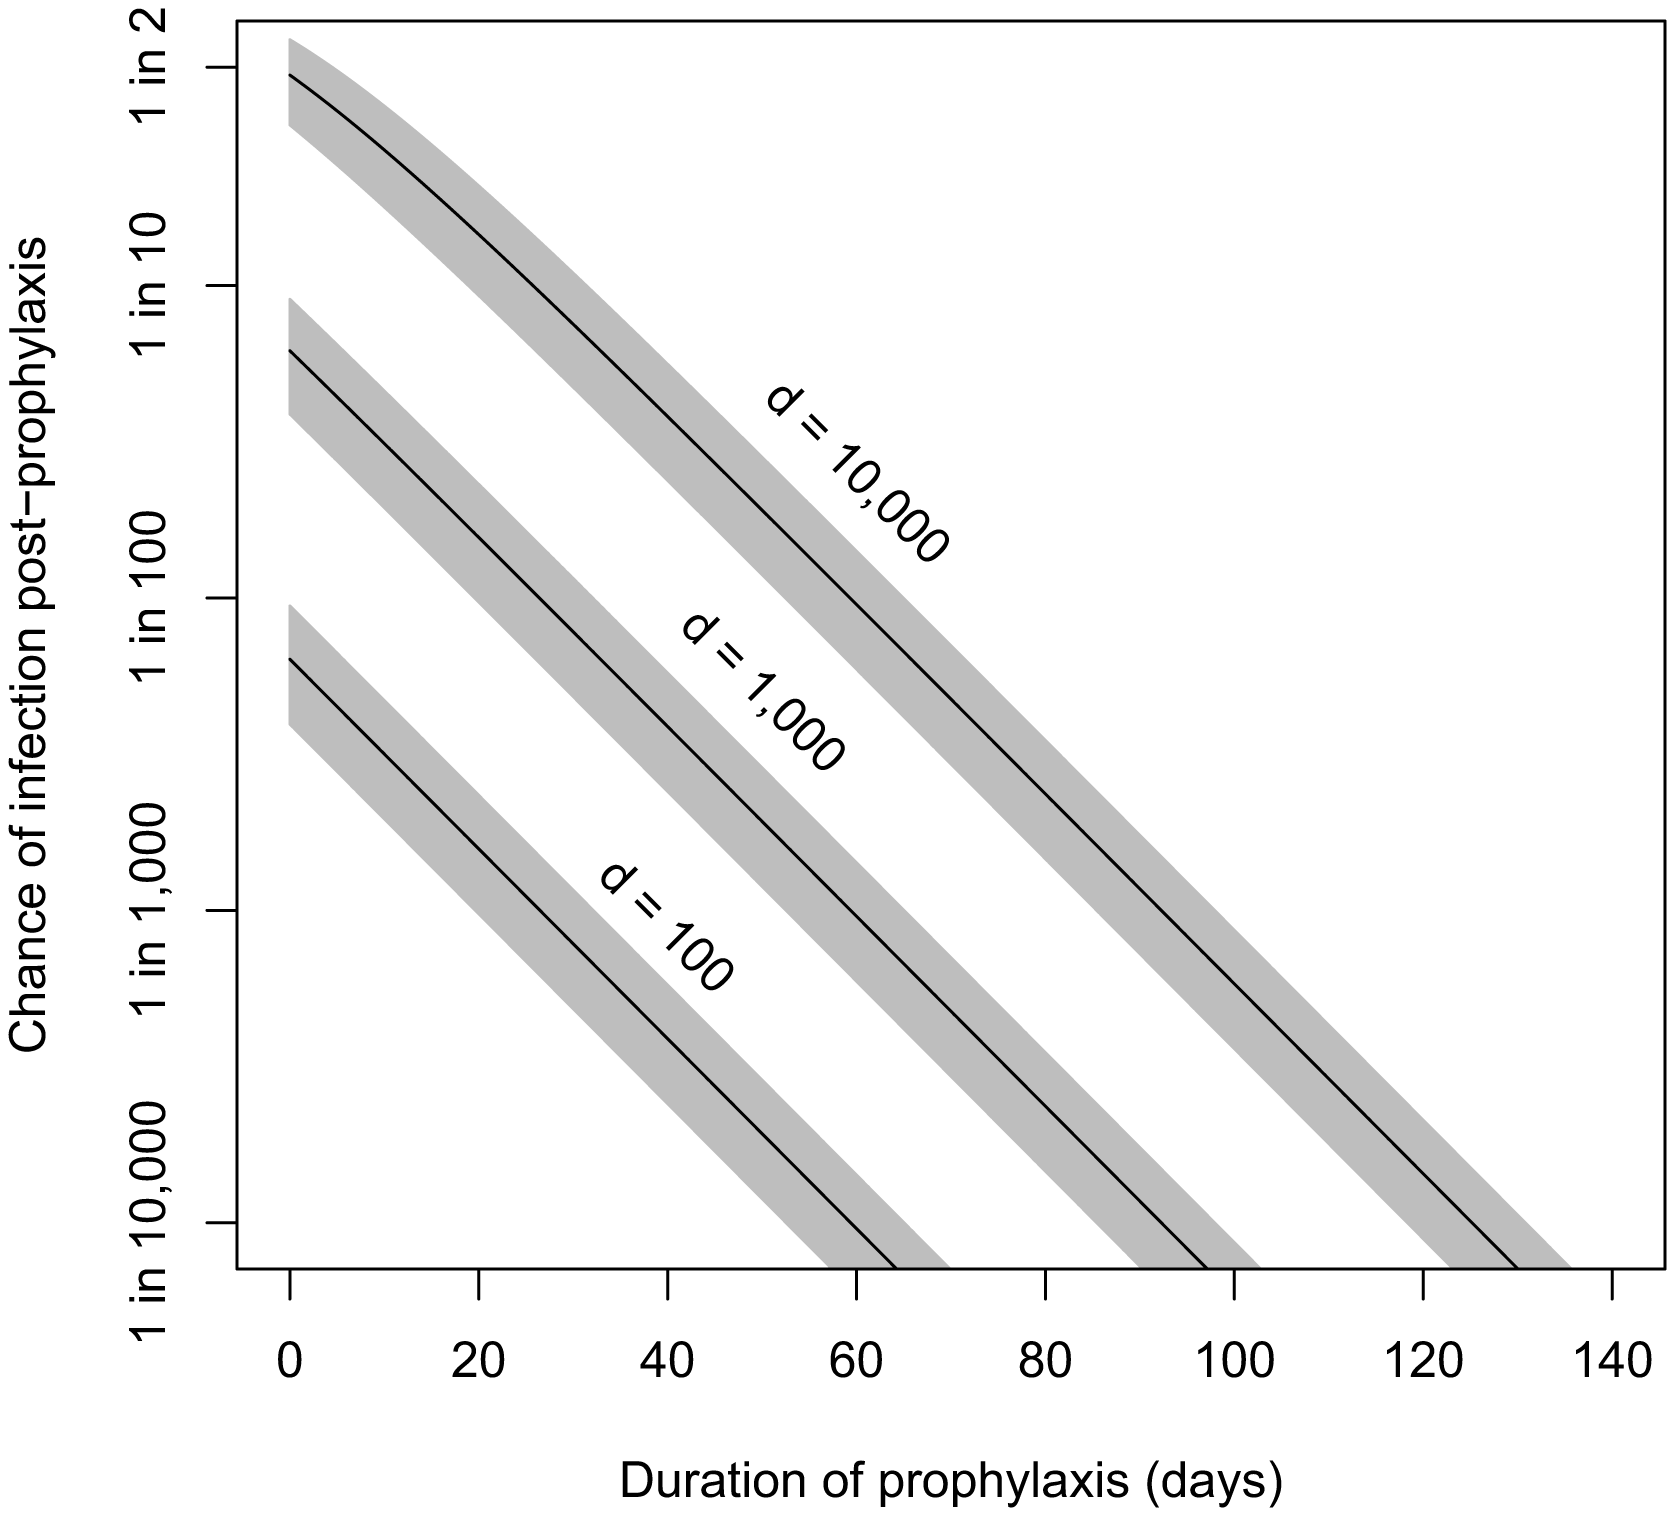 Estimated relationship between duration of prophylaxis and subsequent chance of infection.